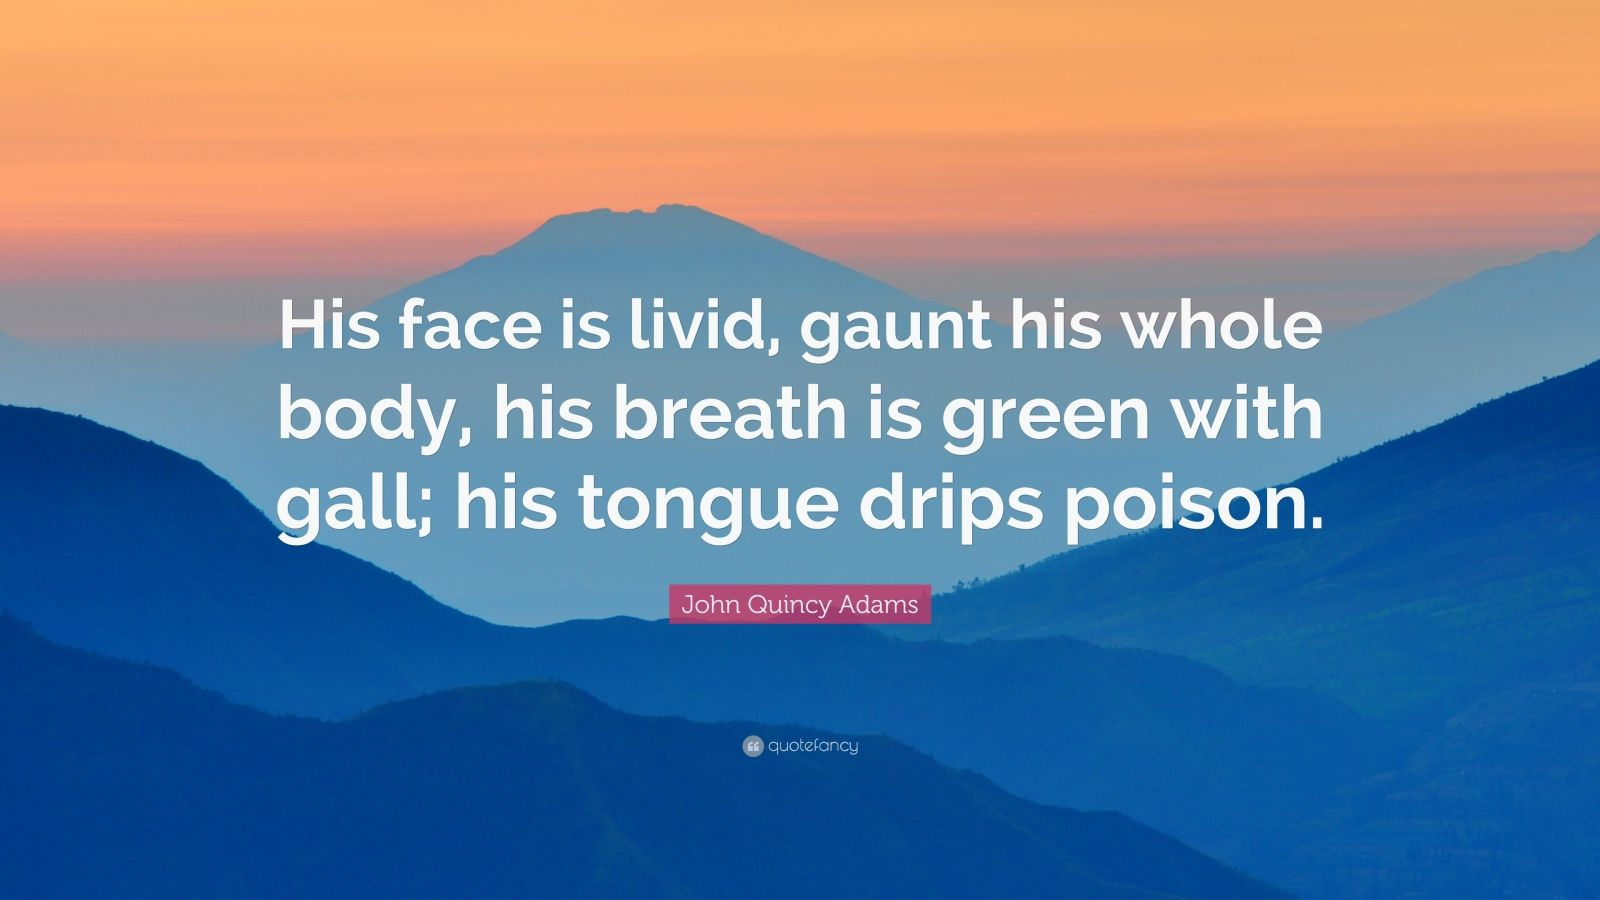 """John Quincy Adams Quote: """"His face is livid, gaunt his whole body, his breath is green with gall; his tongue drips poison."""""""